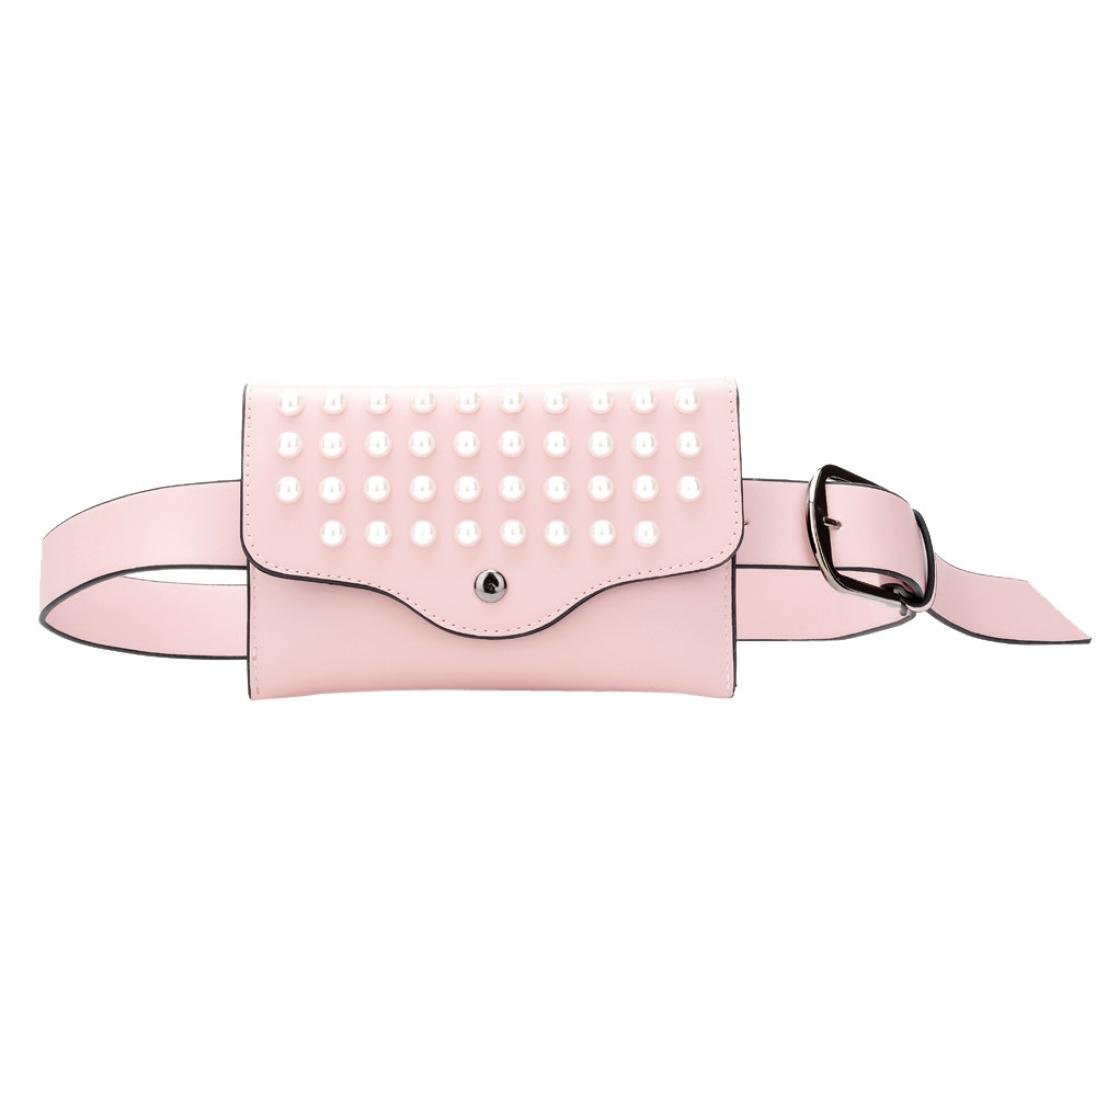 Inkach Waist Pack Bags - Womens Leather Pearl Fanny Packs Shoulder Chest Crossbody Bag (Pink)